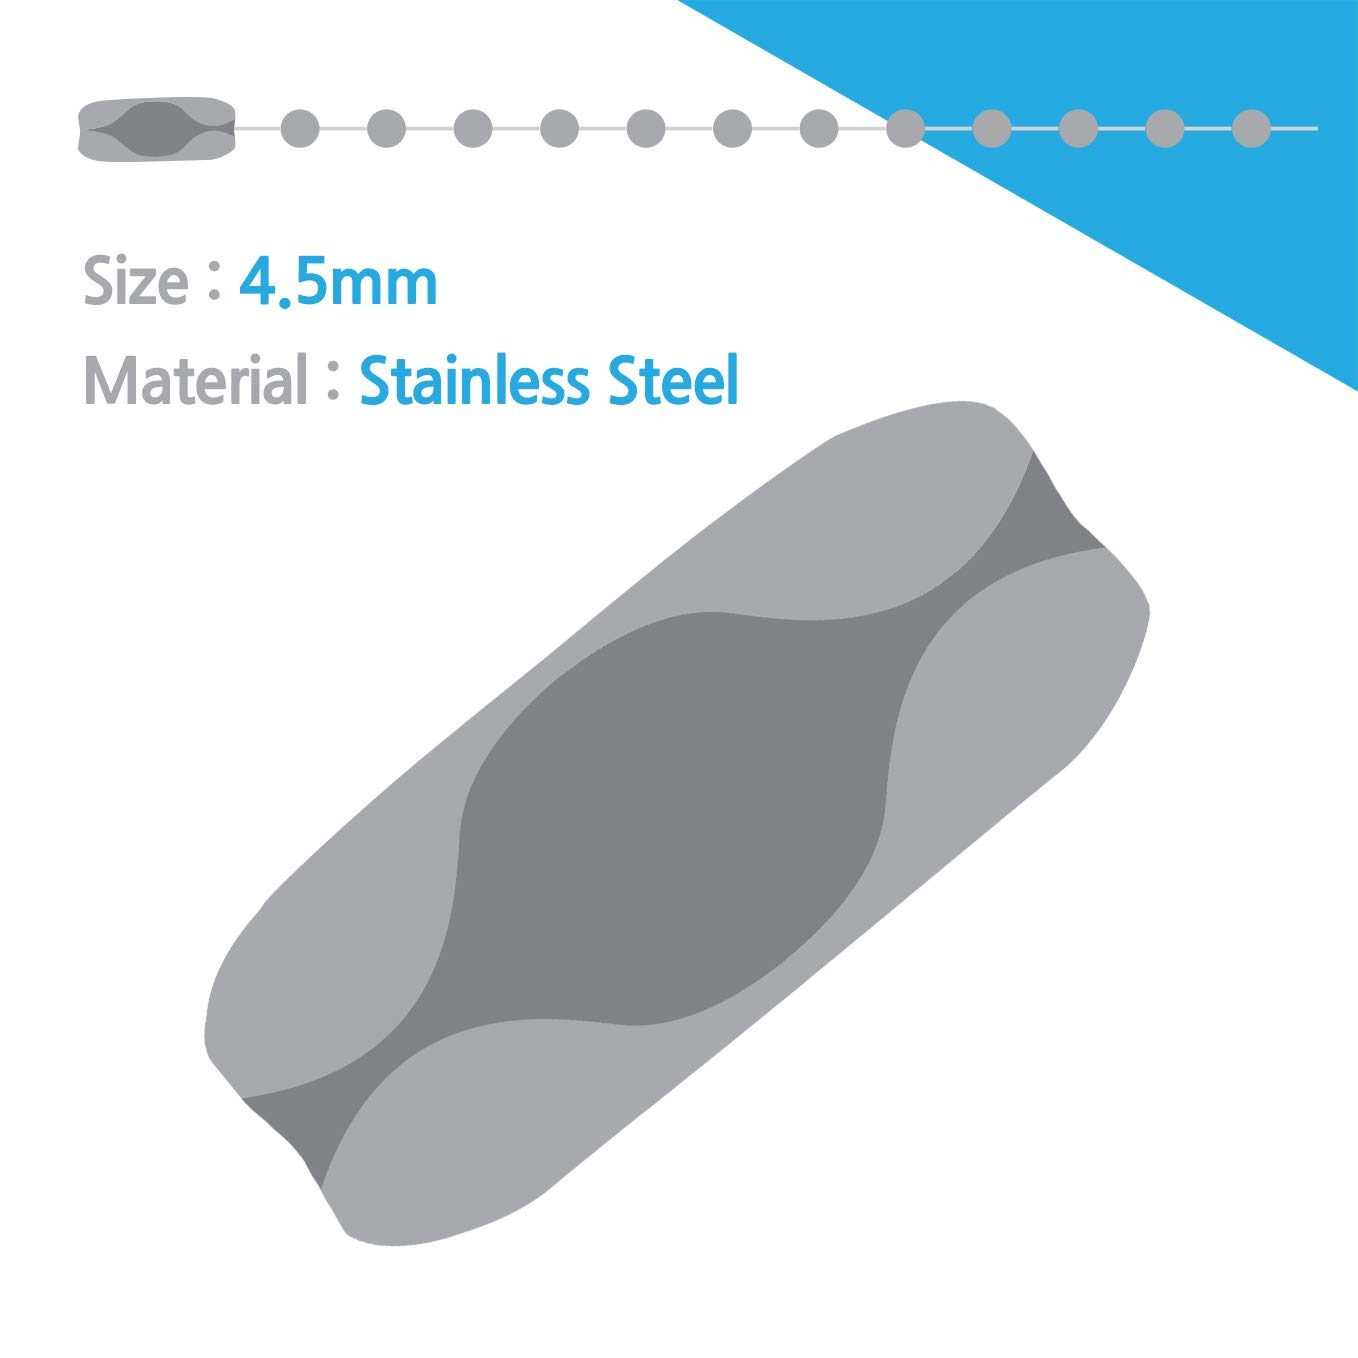 Ball Chain # 10 4.5mm connectors Stainless Steel 50 Count